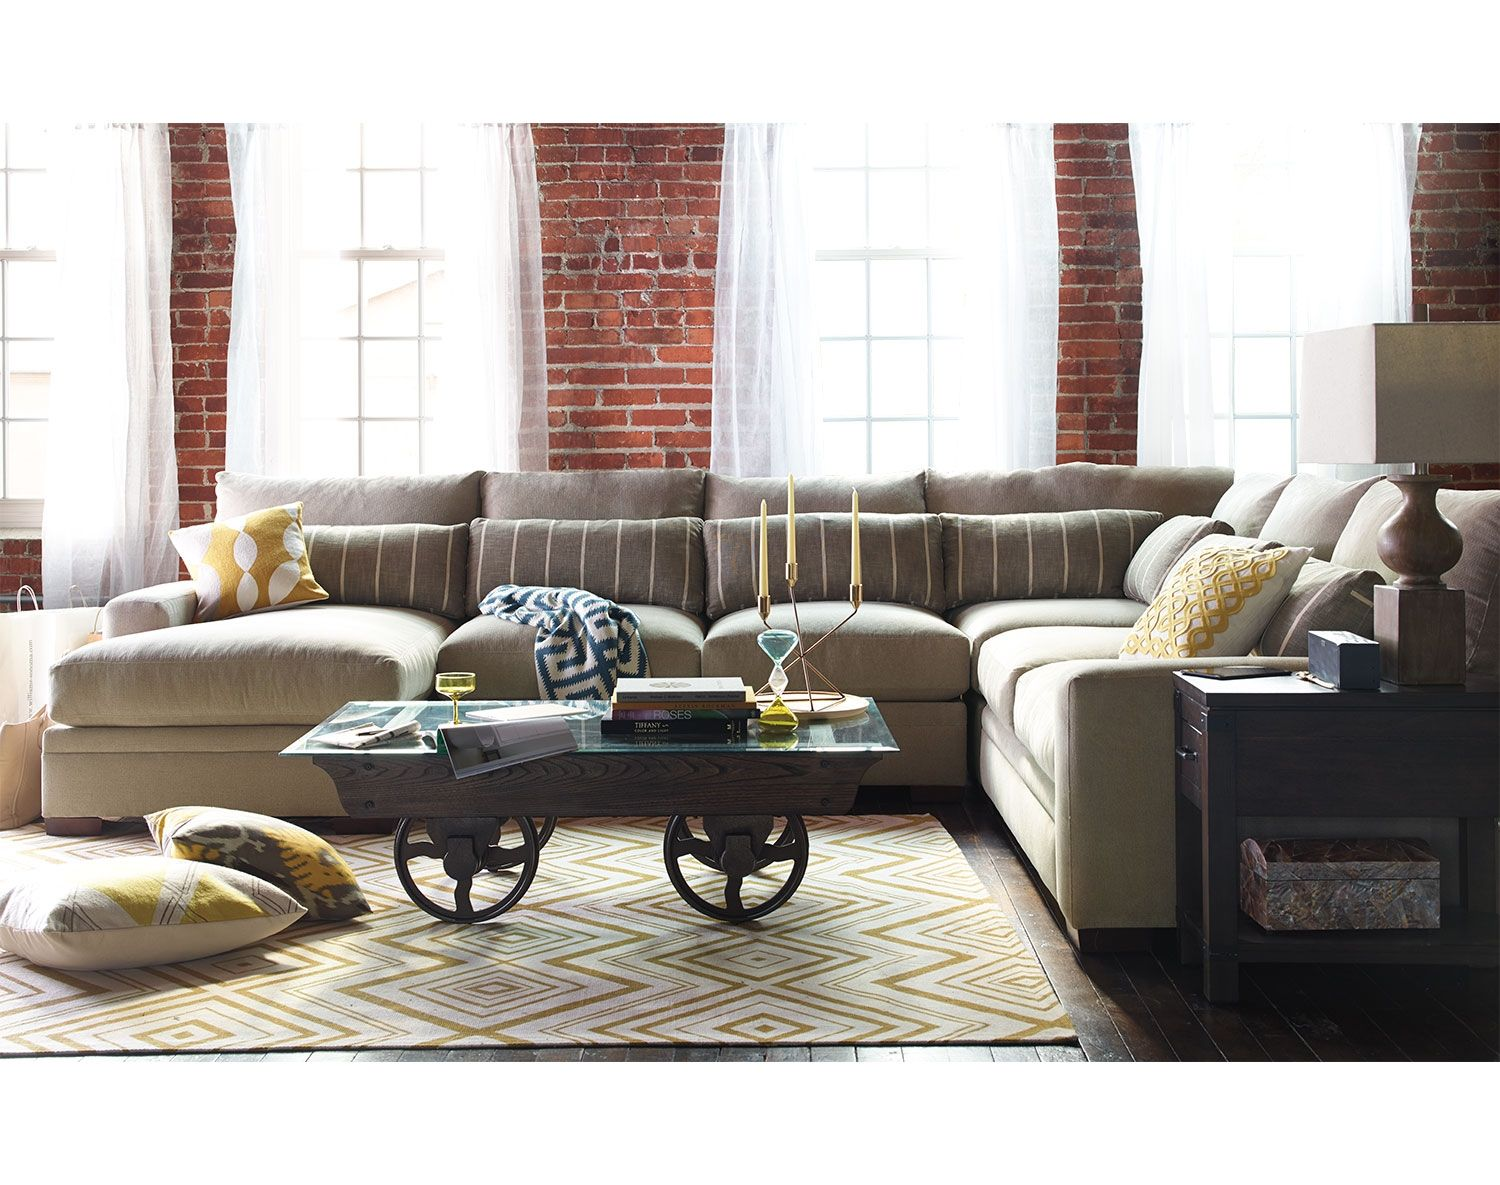 Living Room Design With Sectional Sofa Inspiration My Favorite But It Cost $2999 The Ventura Collection Review